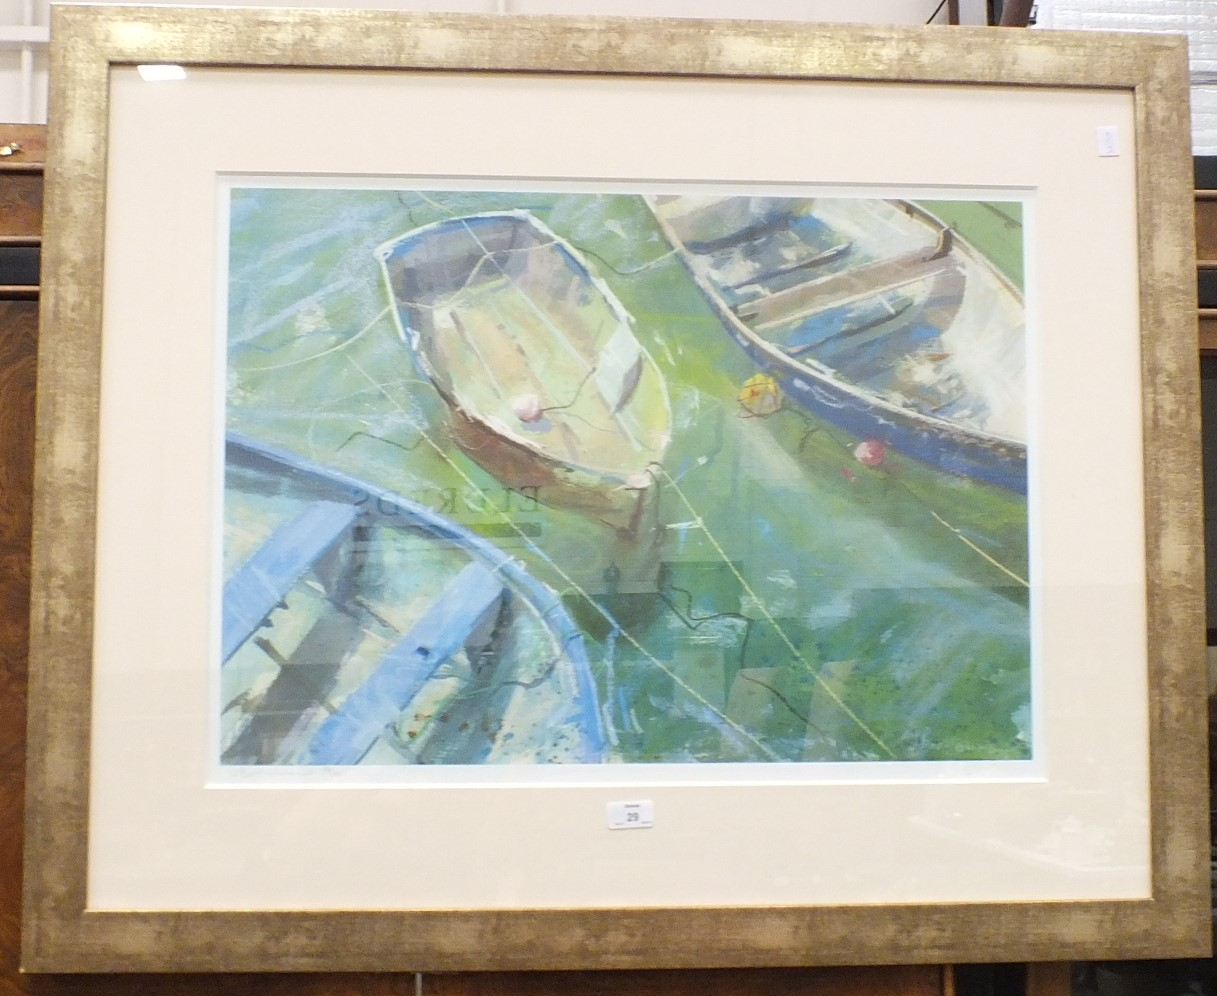 Lot 29 - After J Bartholomew, Moored Rowing Boats, a limited edition coloured print, 51 x 70cm, signed and